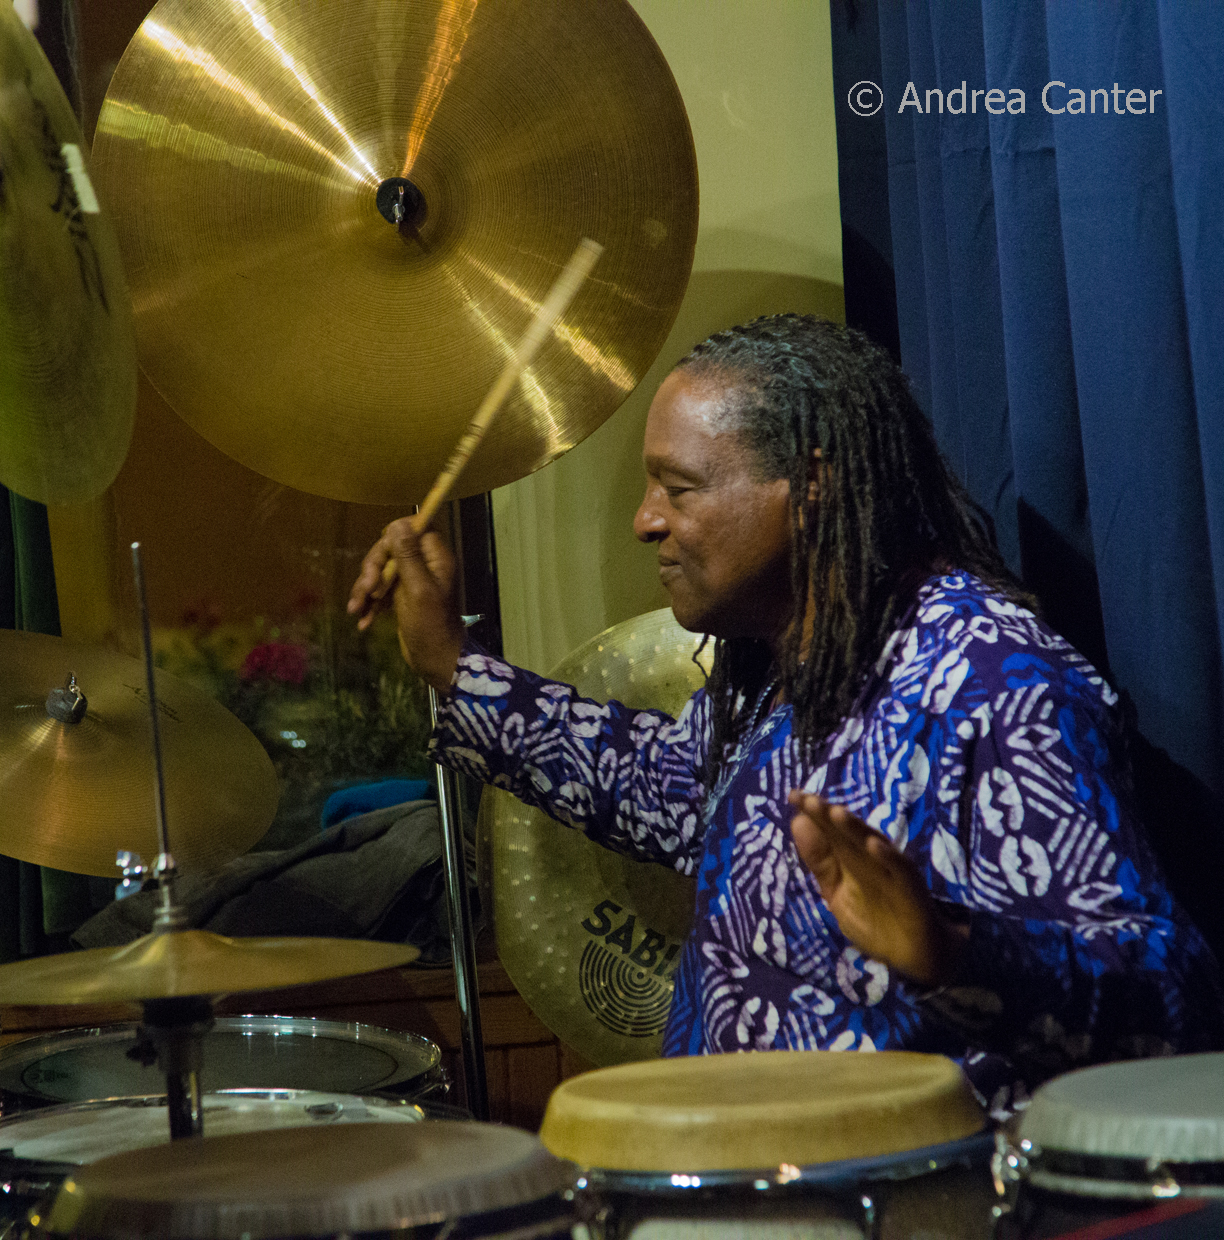 Babatunde Lea – Congas,  Kevin Washington – Drums,  Omar AbdulKarim – Trumpet,   Kavyesh Kaviraj – Piano,   Graydon Peterson - Bass